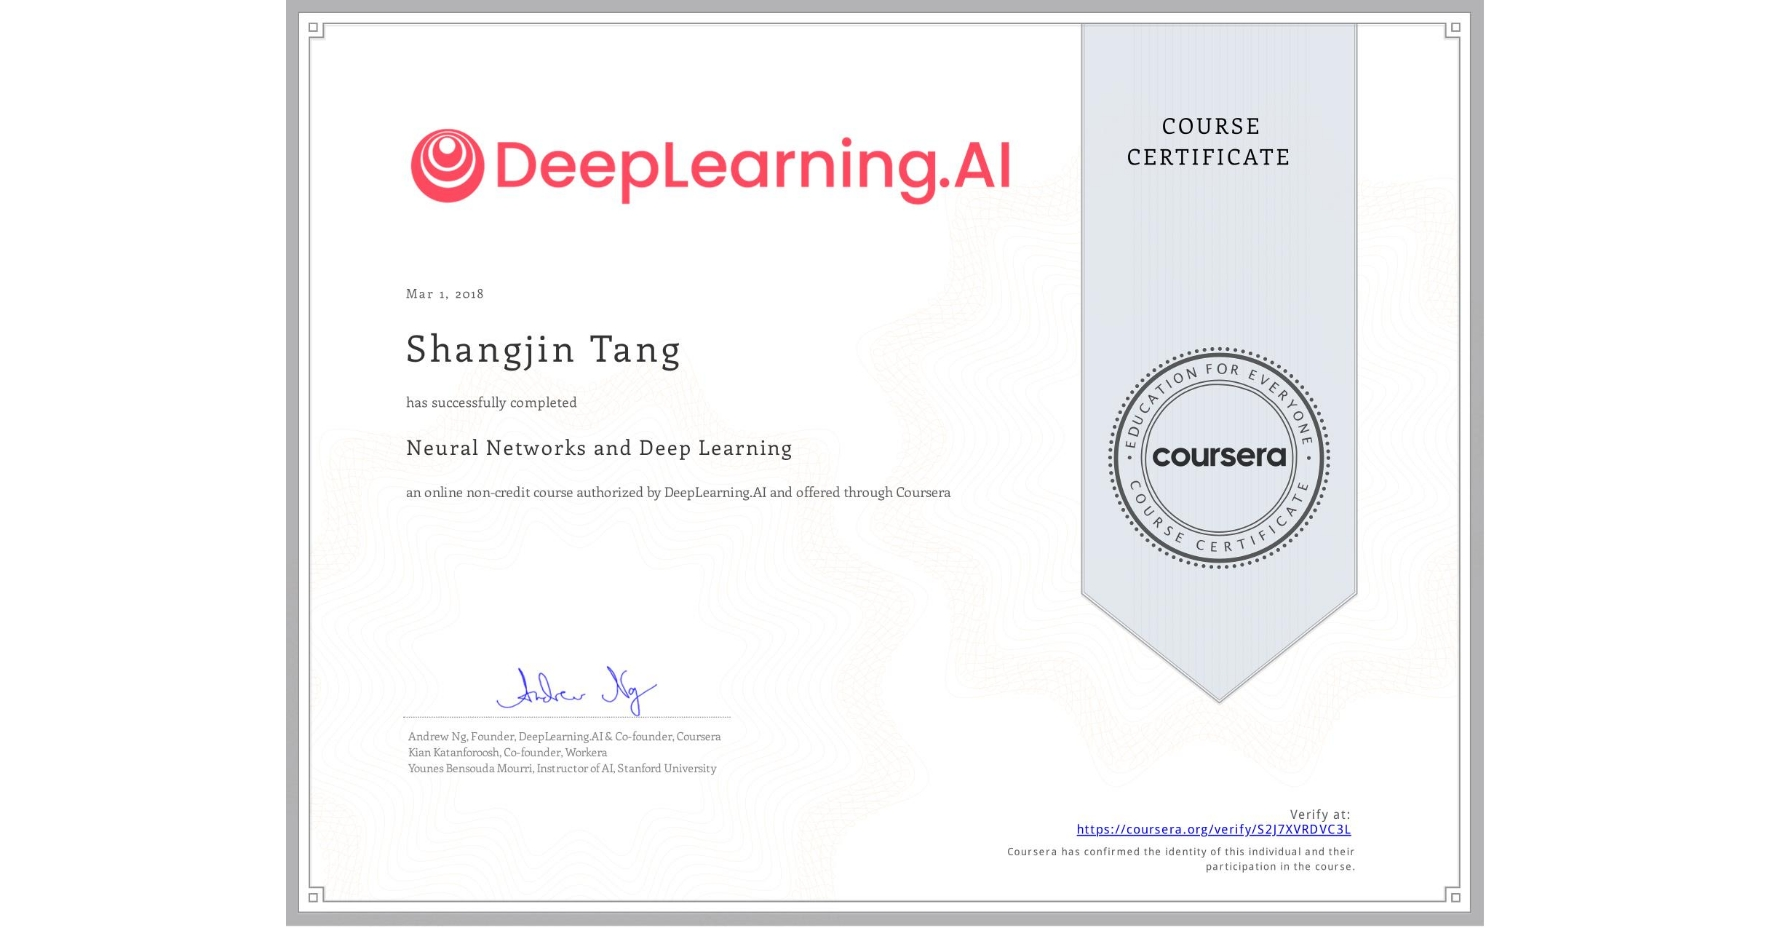 View certificate for Shangjin Tang, Neural Networks and Deep Learning, an online non-credit course authorized by DeepLearning.AI and offered through Coursera